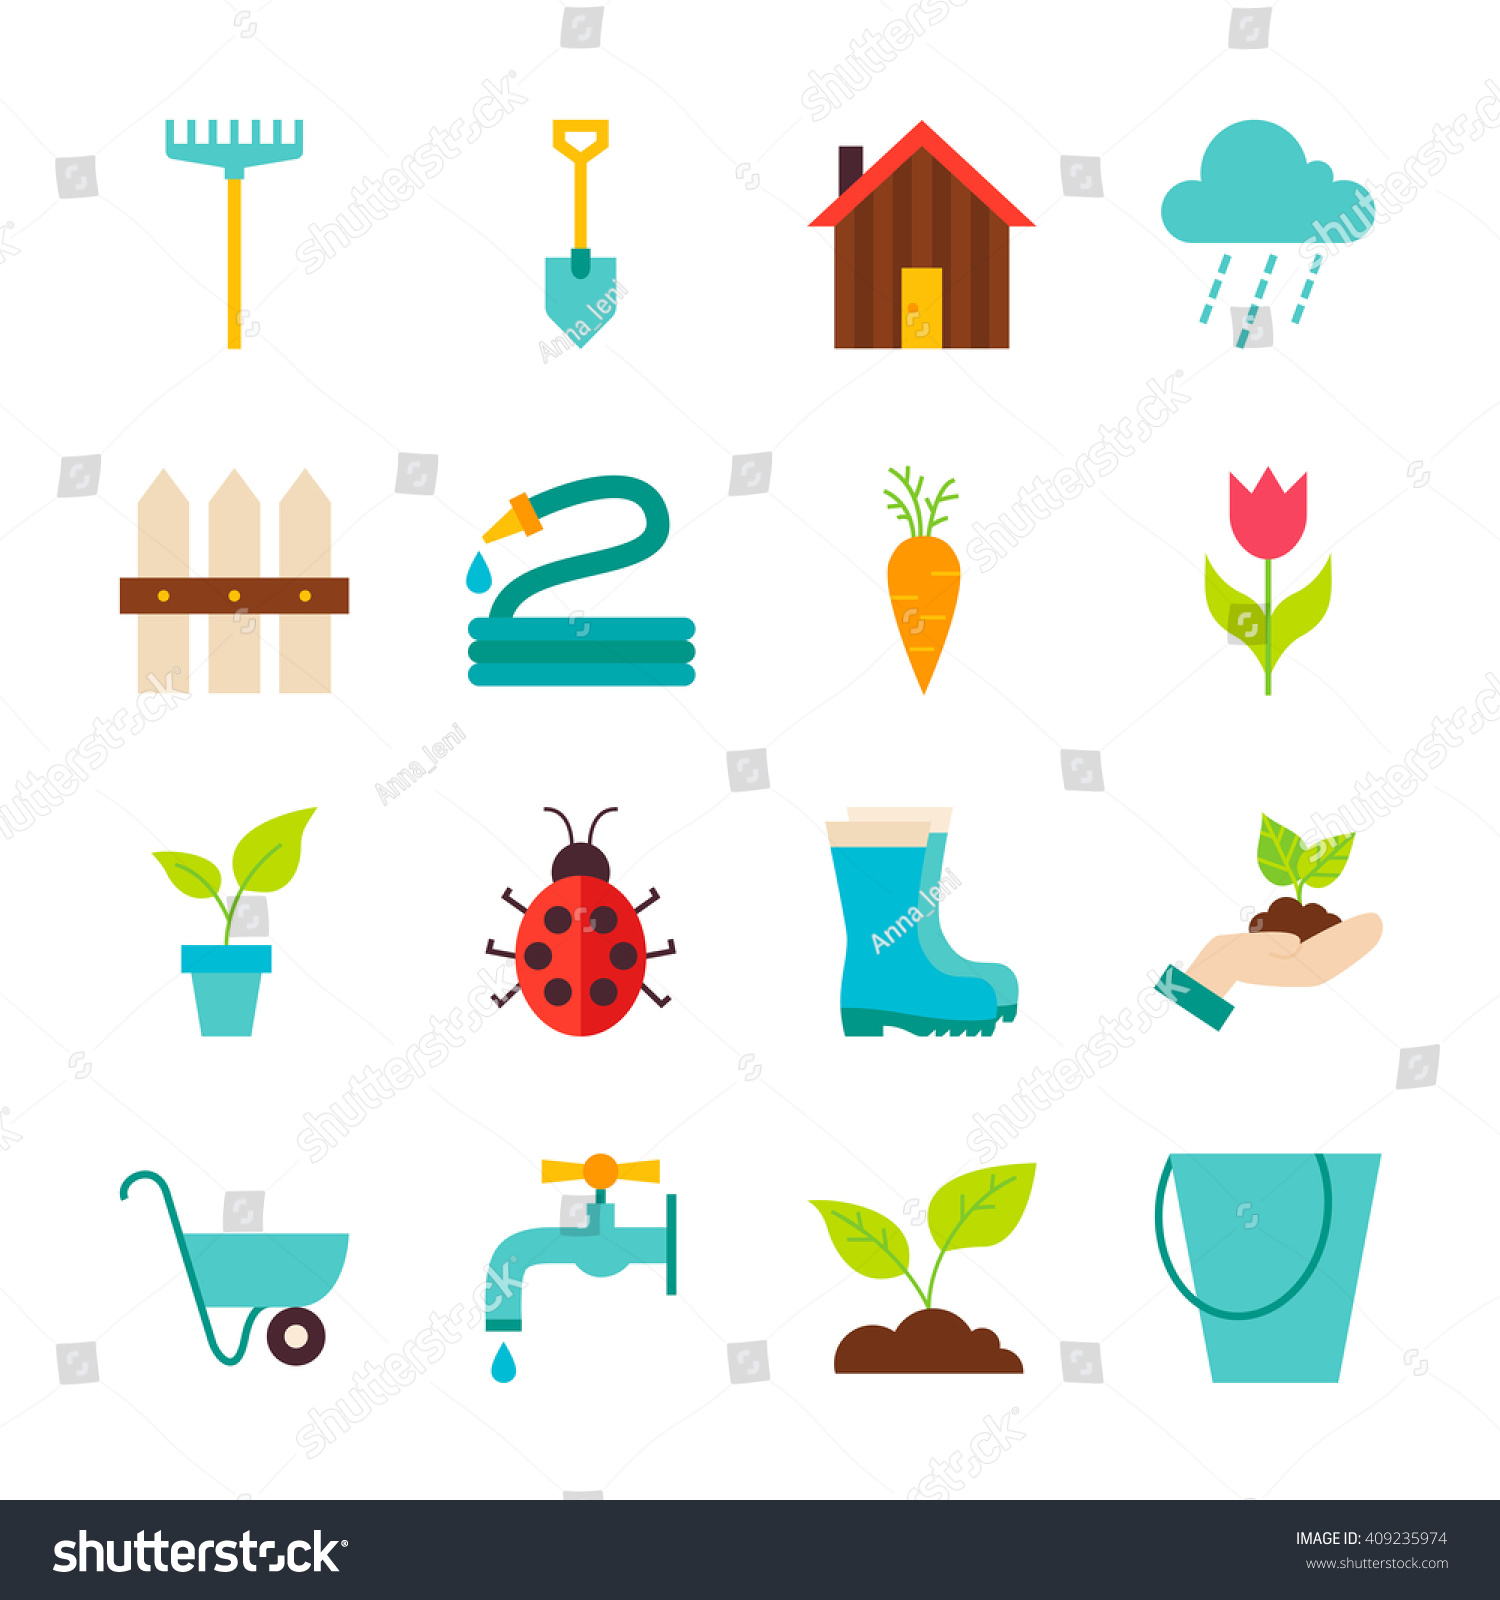 Marvelous Spring Garden Objects Set Isolated Over White. Flat Design Vector  Illustration. Collection Of Nature